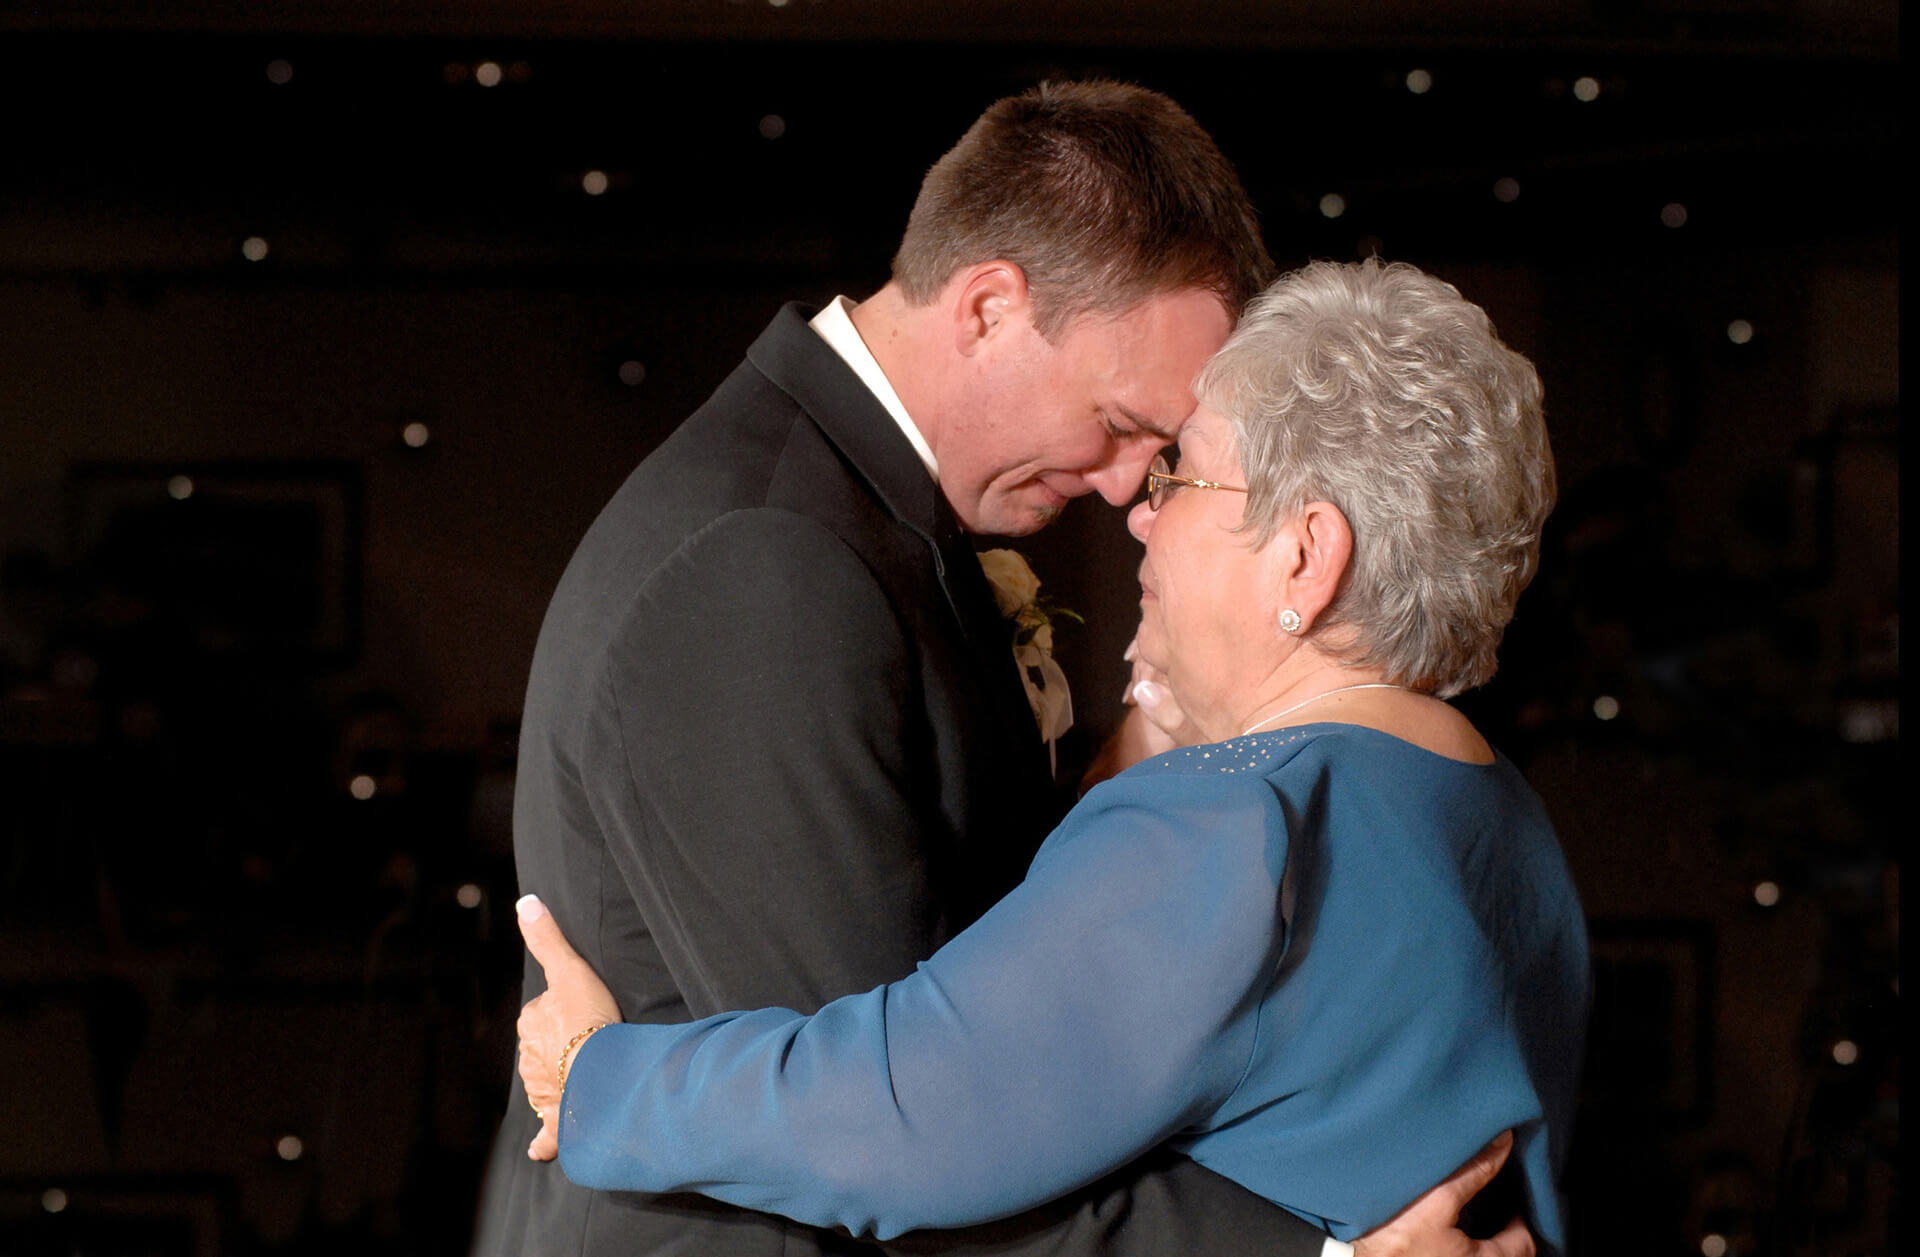 A Lake Orion, Michigan groom cries as he dances with his mother at his wedding.